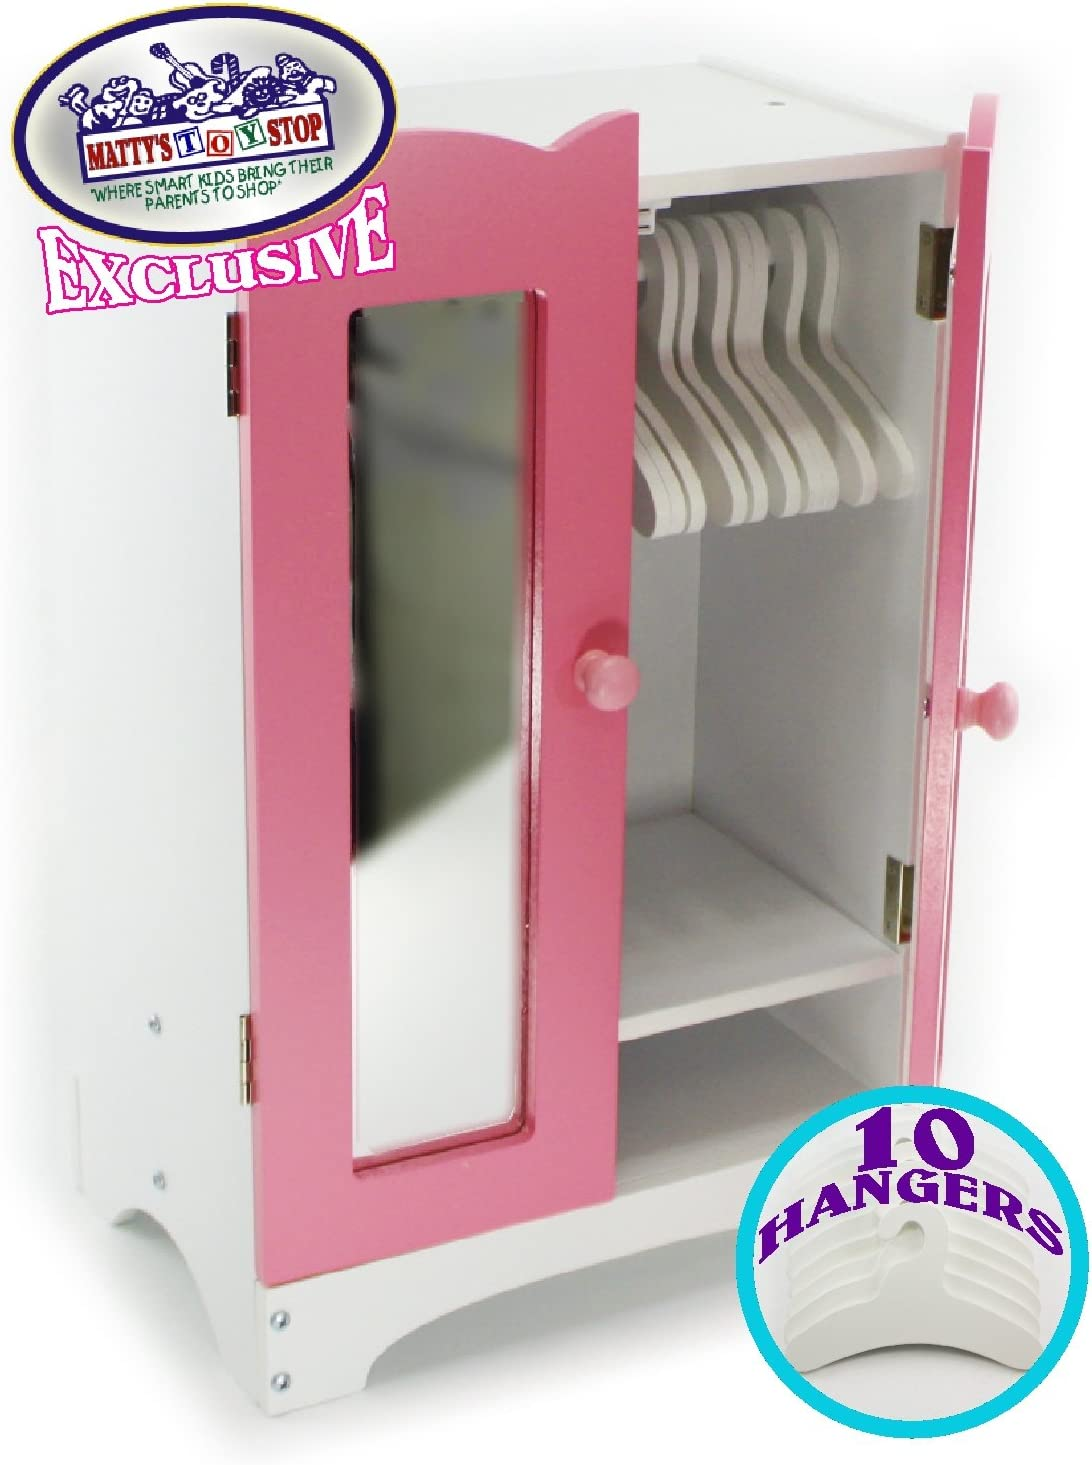 Matty's Toy Stop 18 Inch Doll Furniture Pink/White Wooden Armoire Closet with 10 Hangers - Fits American Girl Dolls